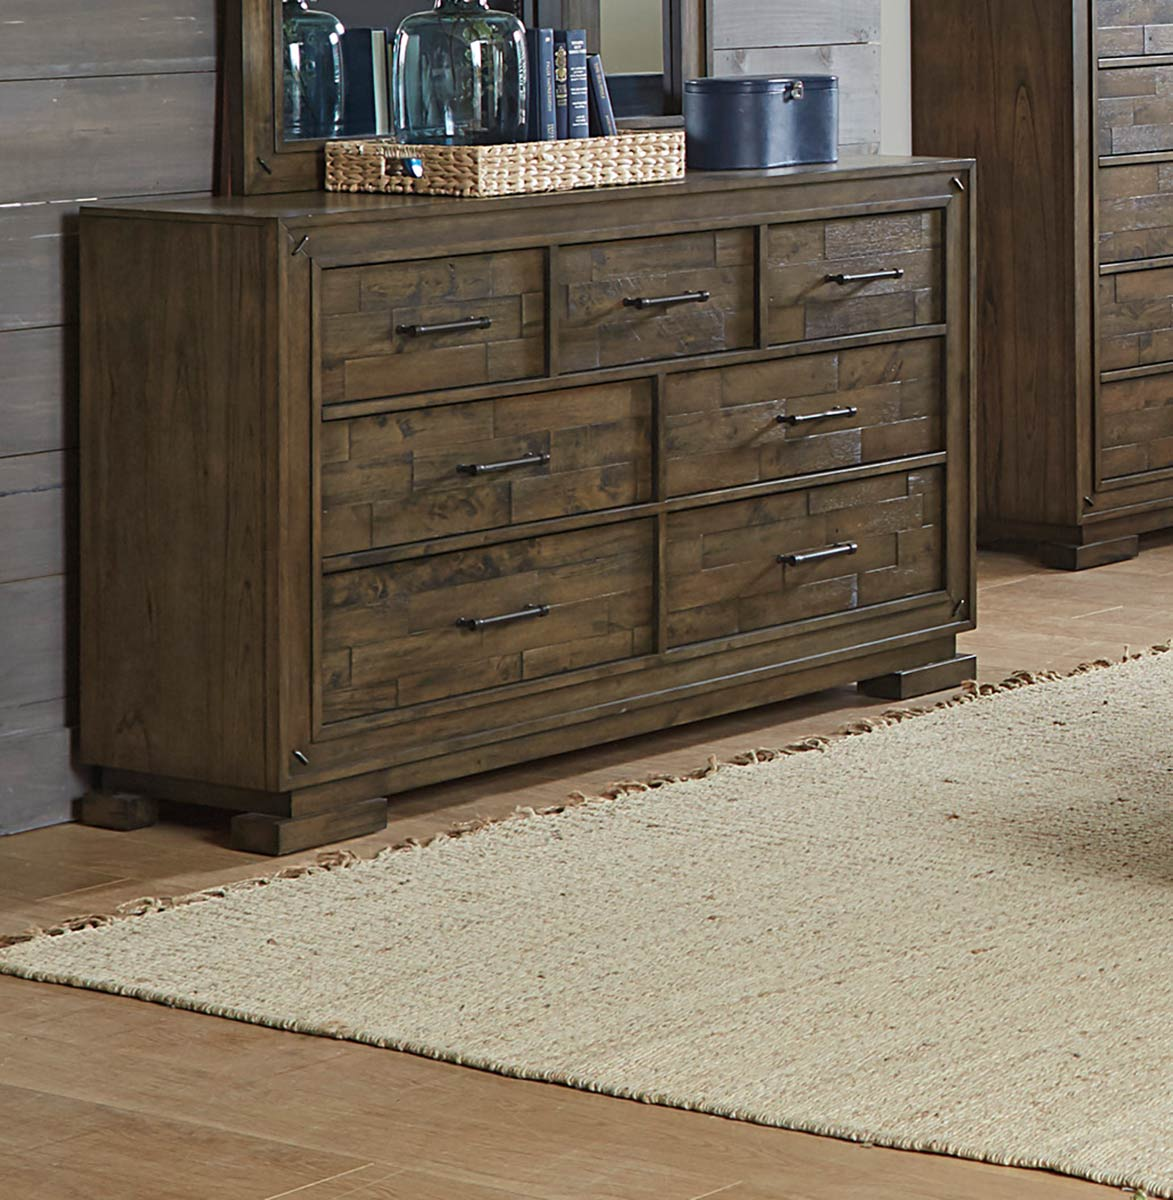 Homelegance Griffon Dresser - Antique Brown